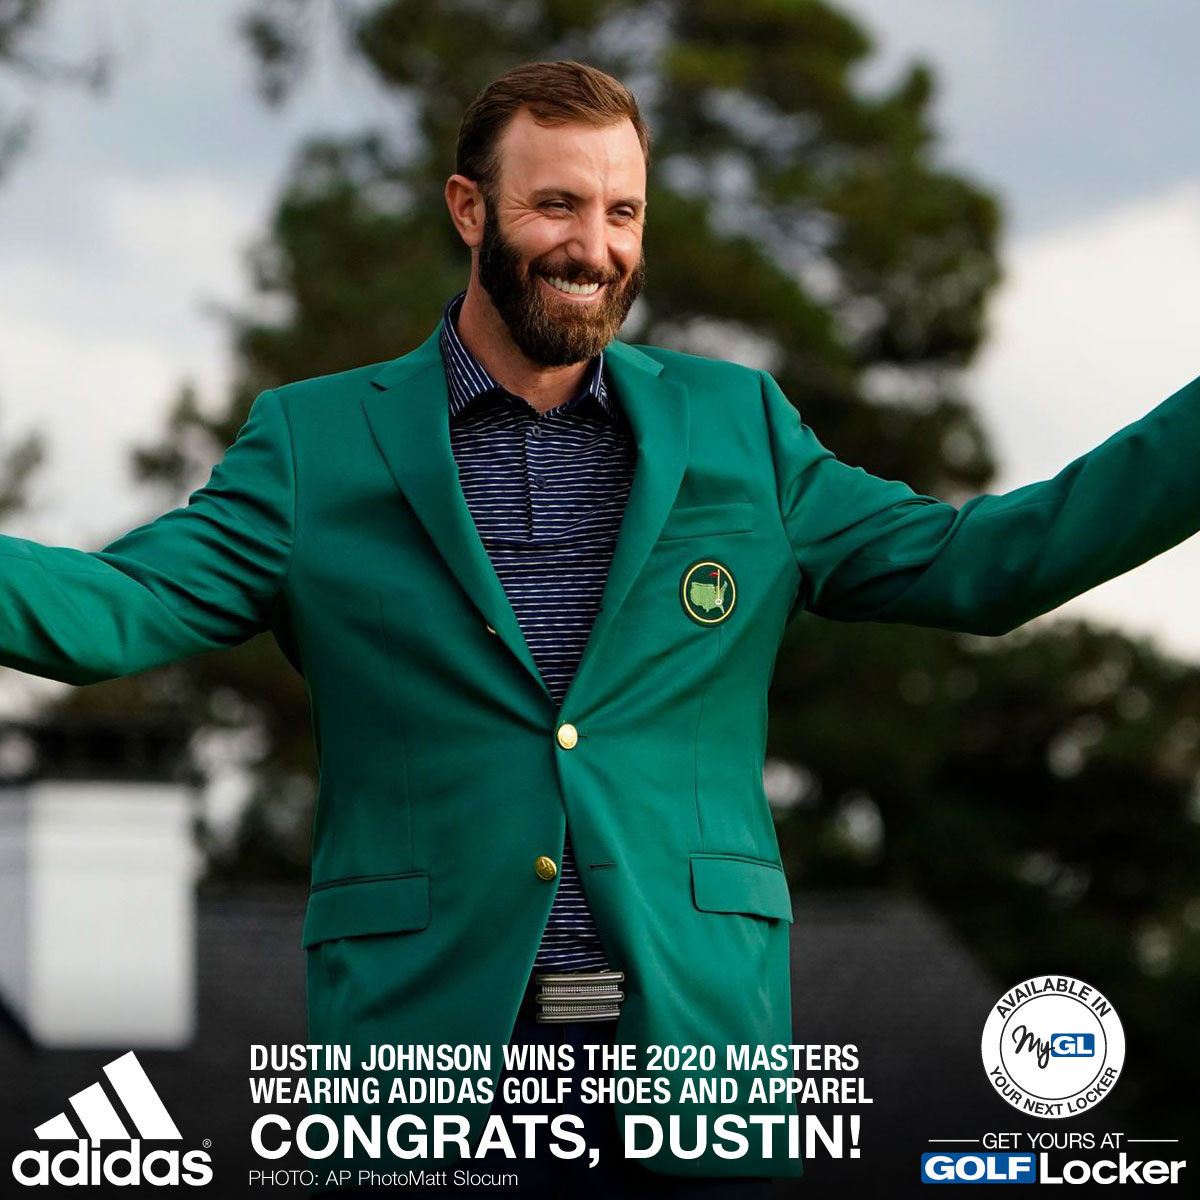 Dustin Johnson Wins the 2020 Masters Wearing Adidas Golf Shoes and Apparel